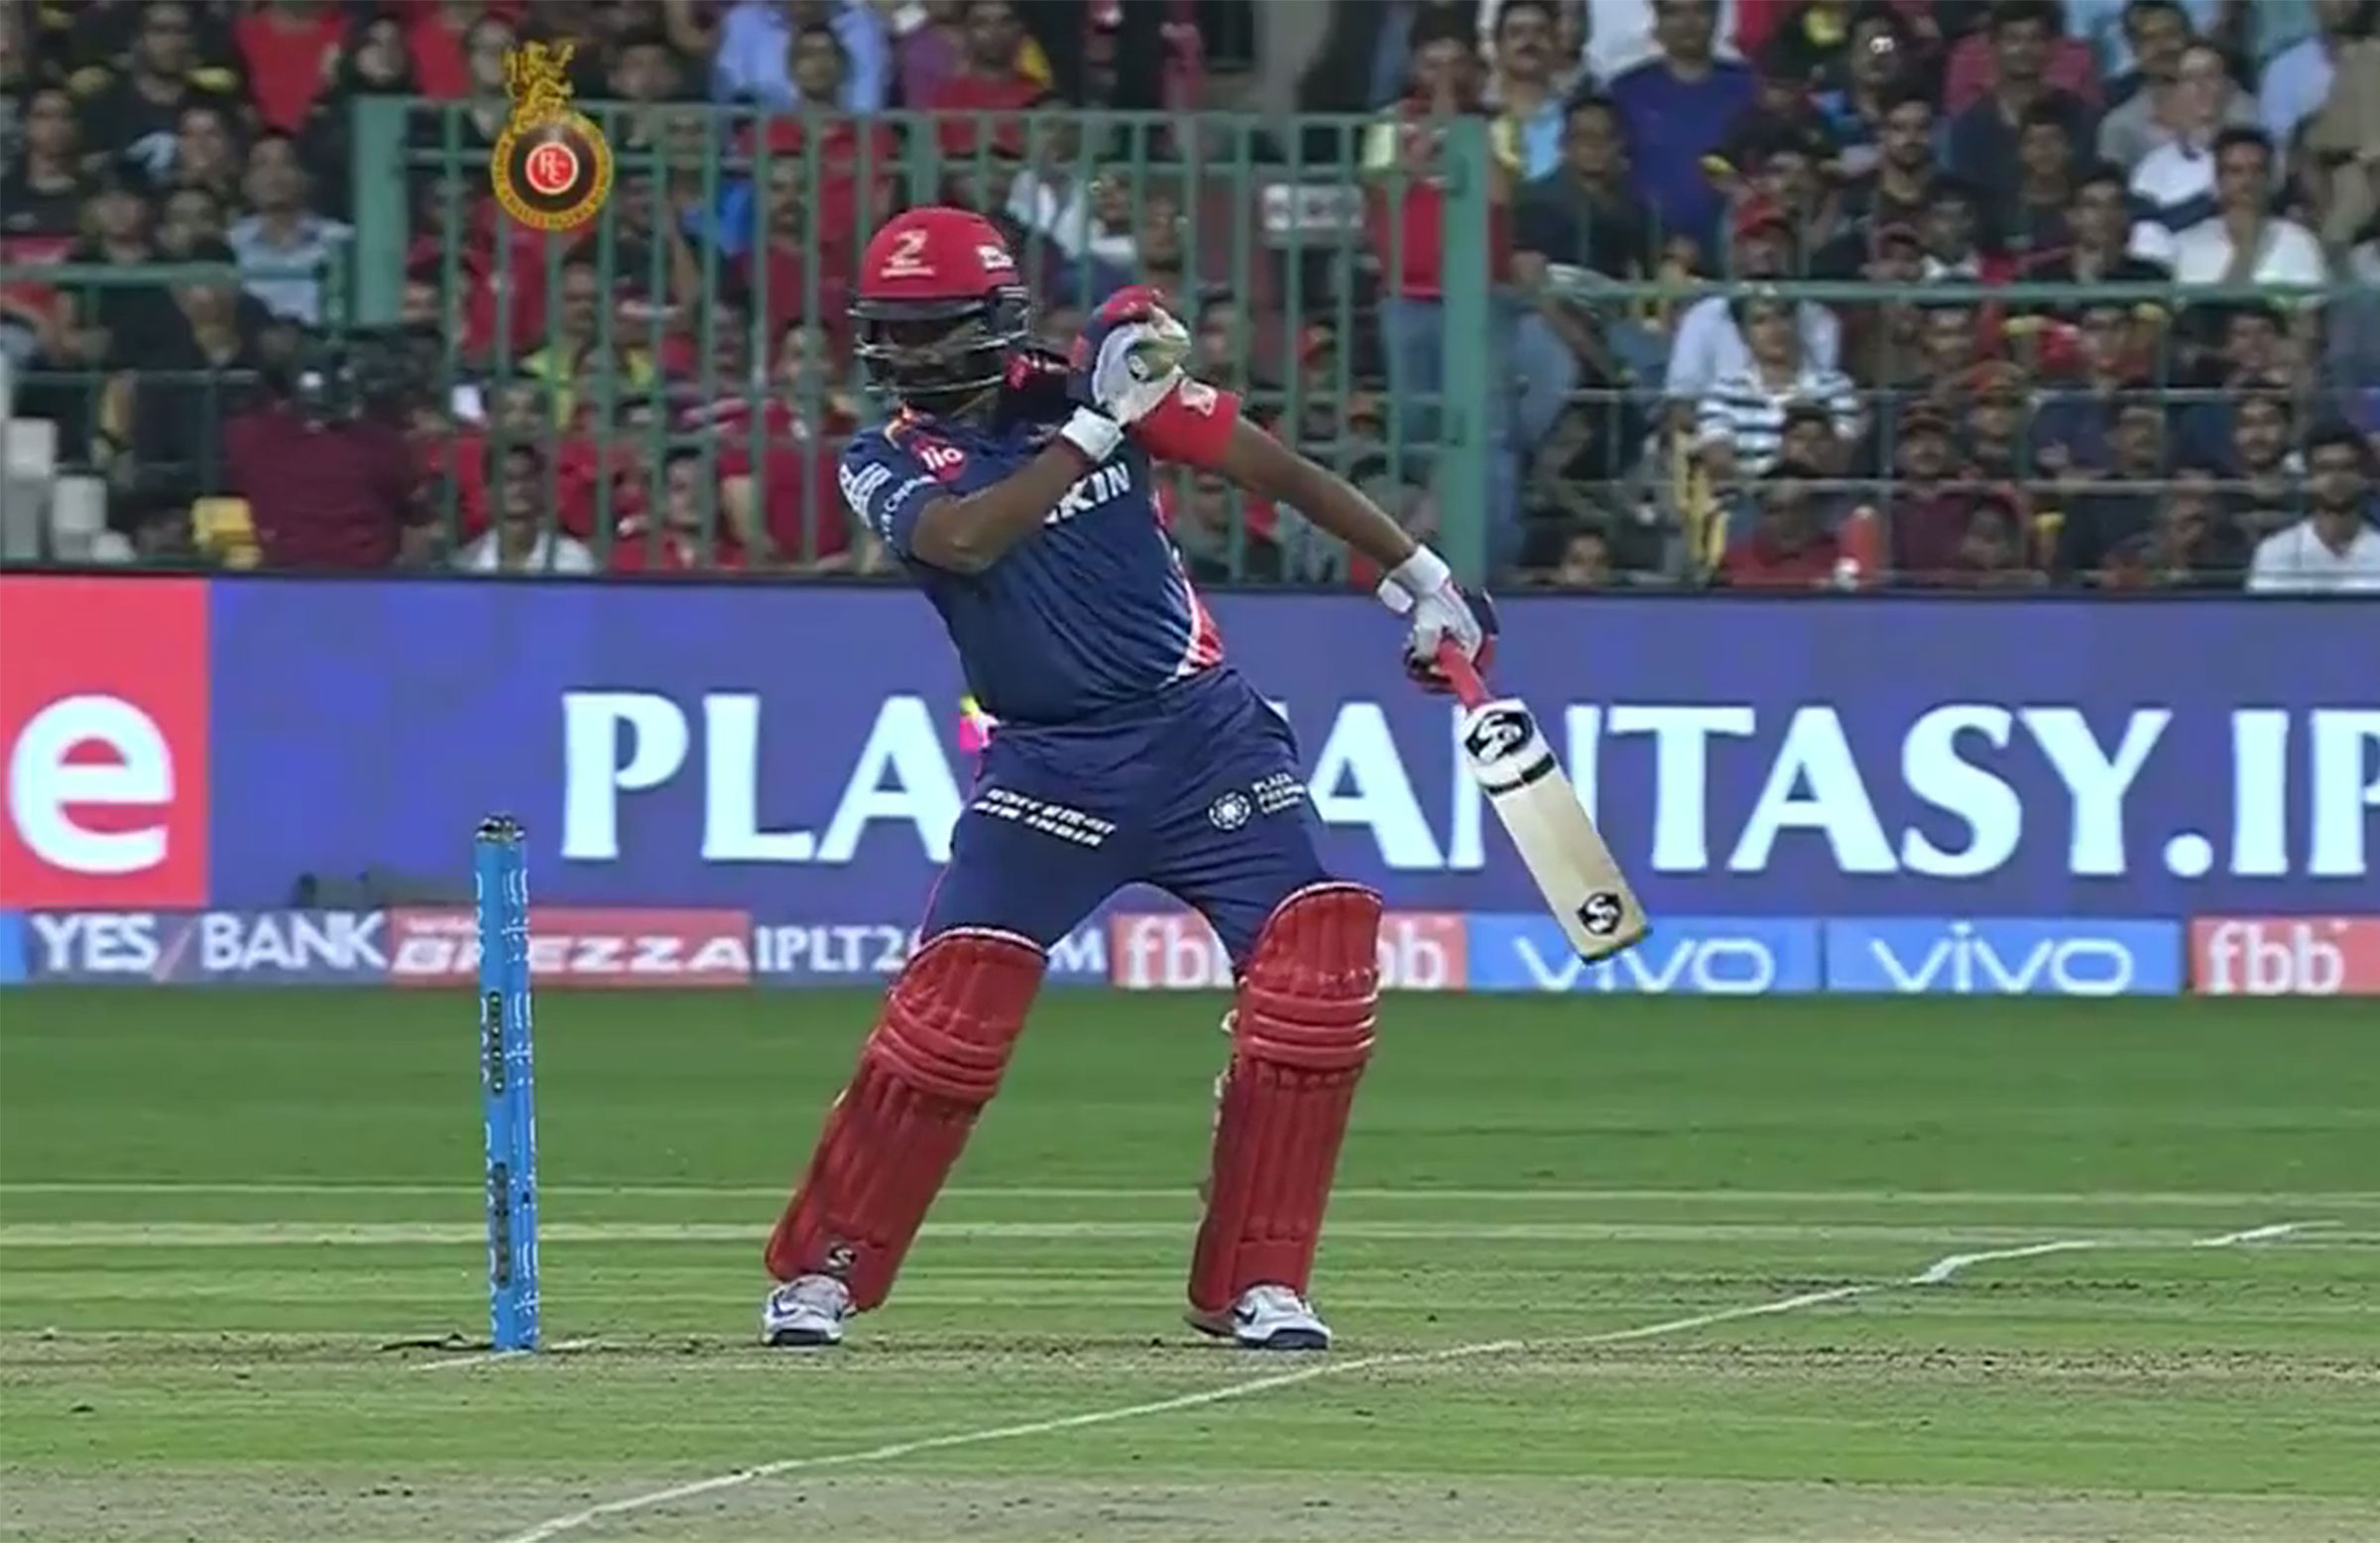 Mishra ended up fending the ball away with his hand // BCCI